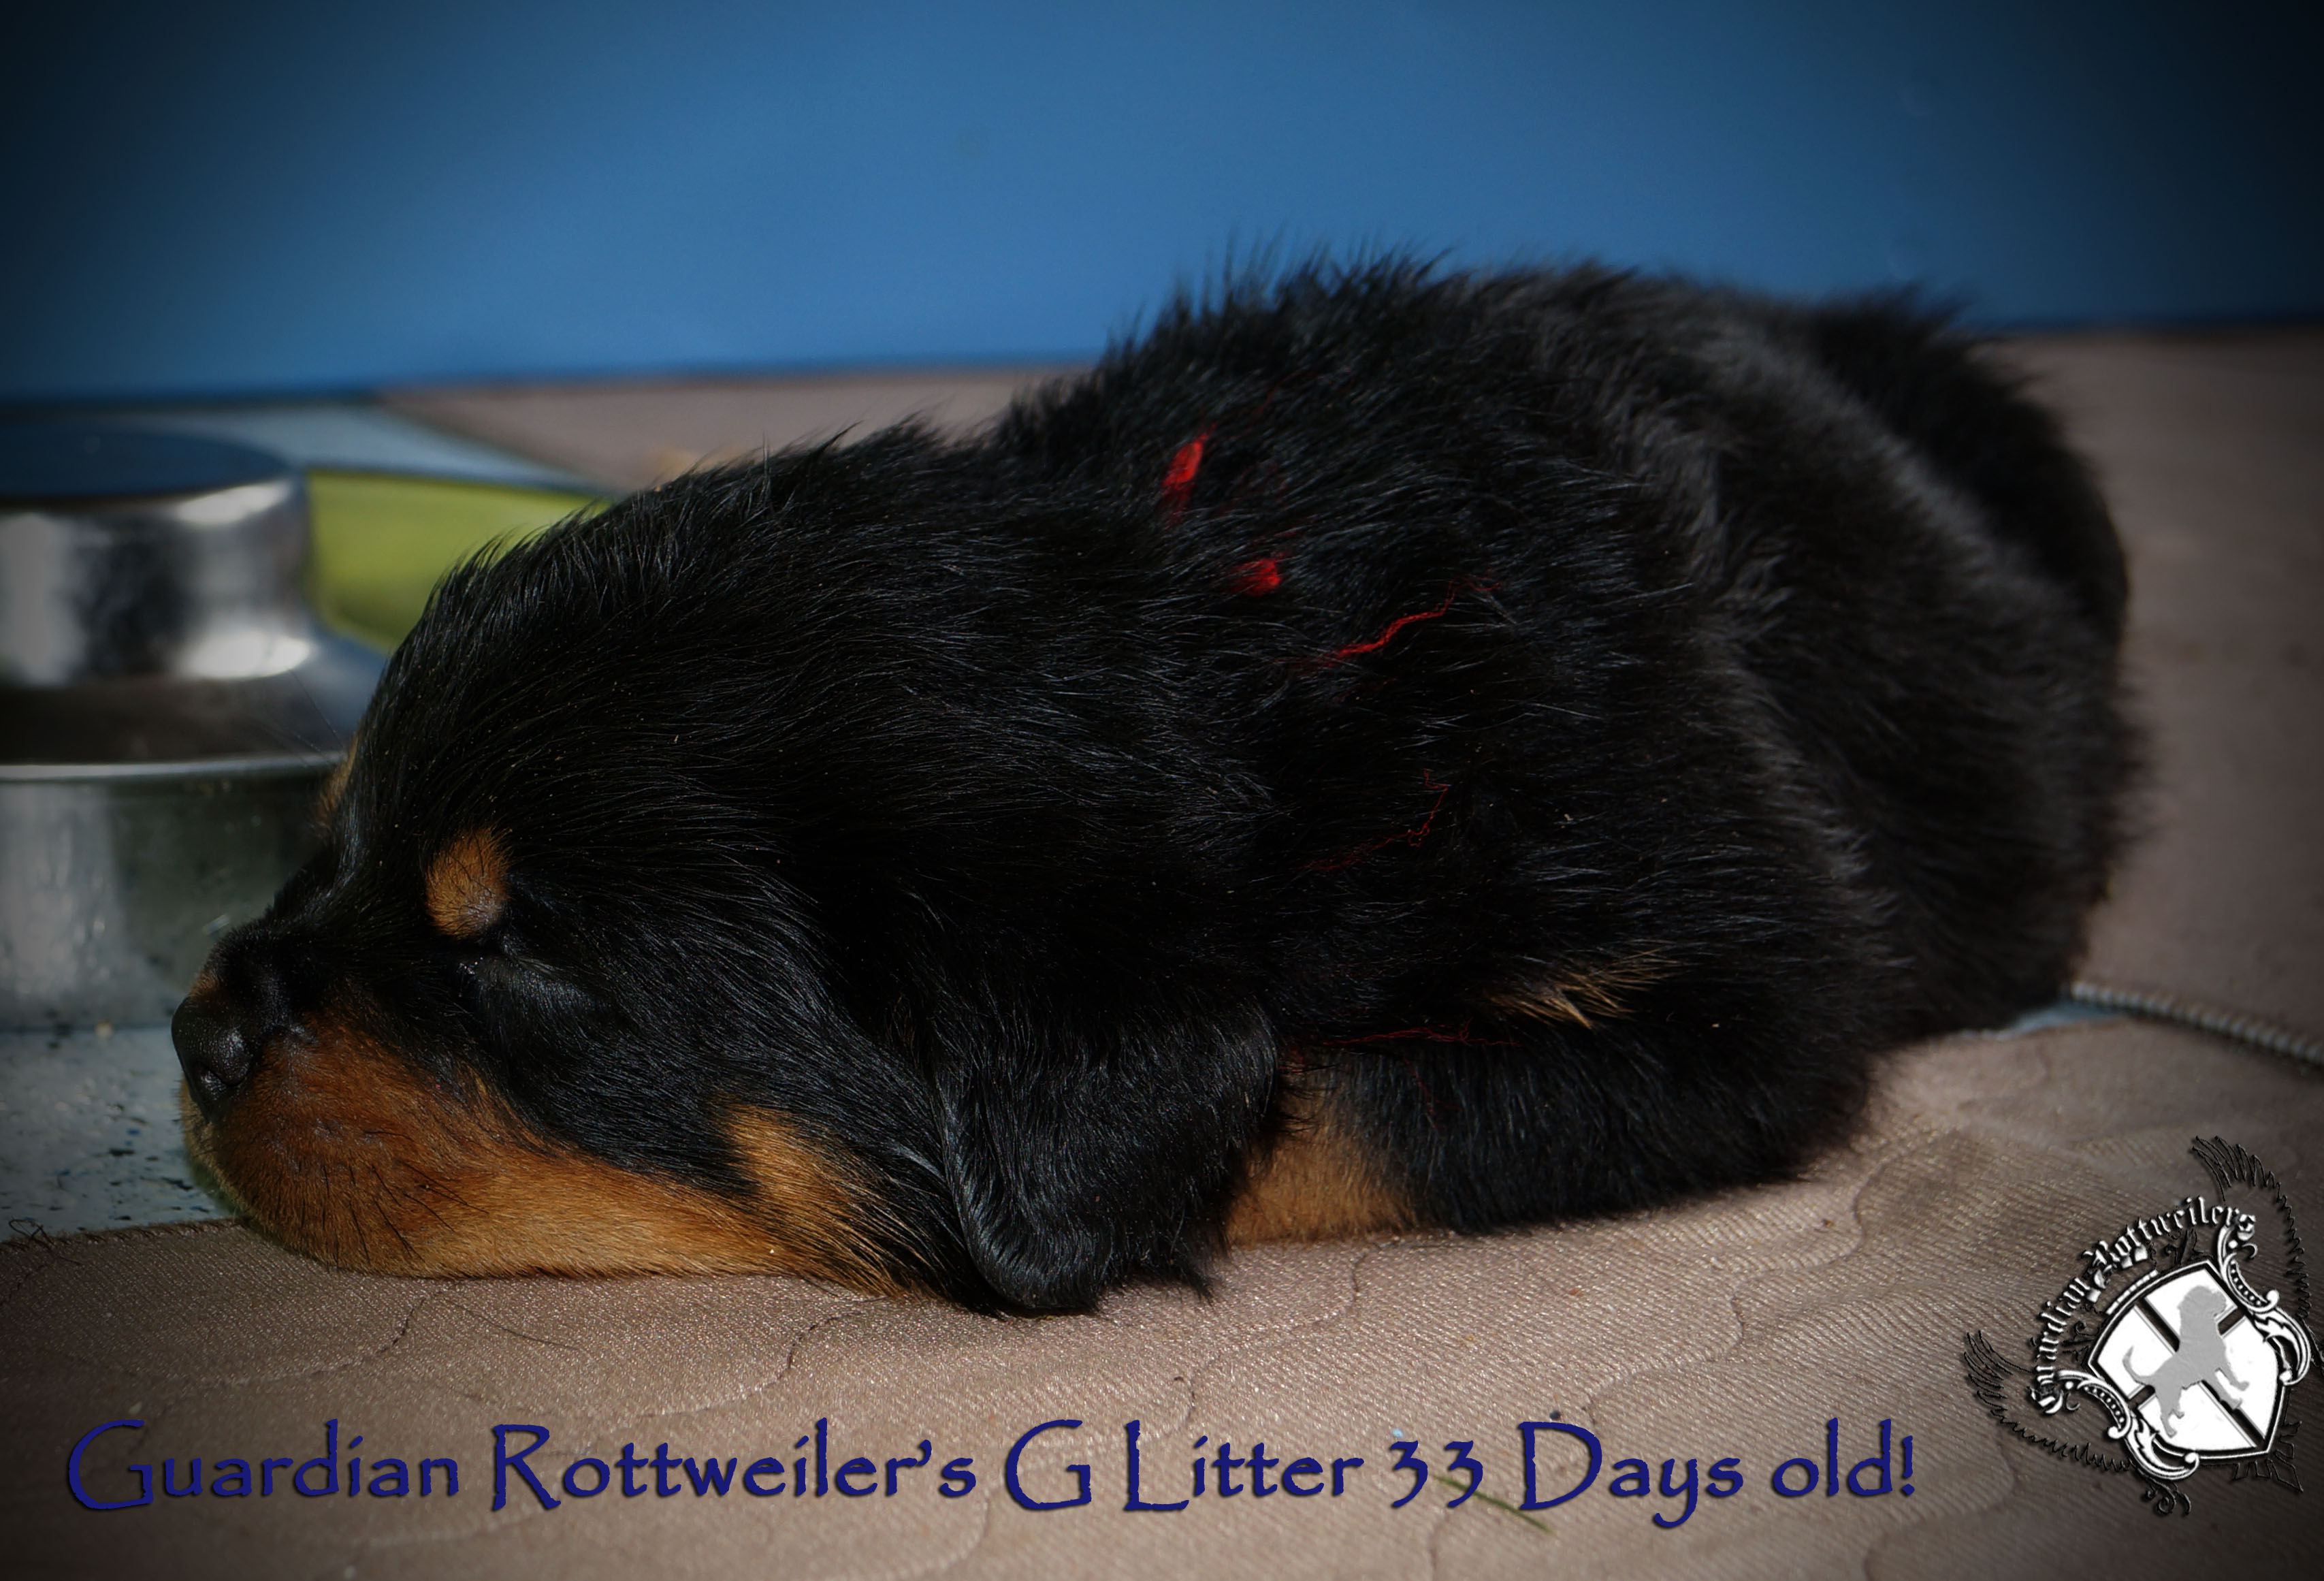 Amazing Rottweiler Chubby Adorable Dog - glitter33days04  Trends_61850  .jpg